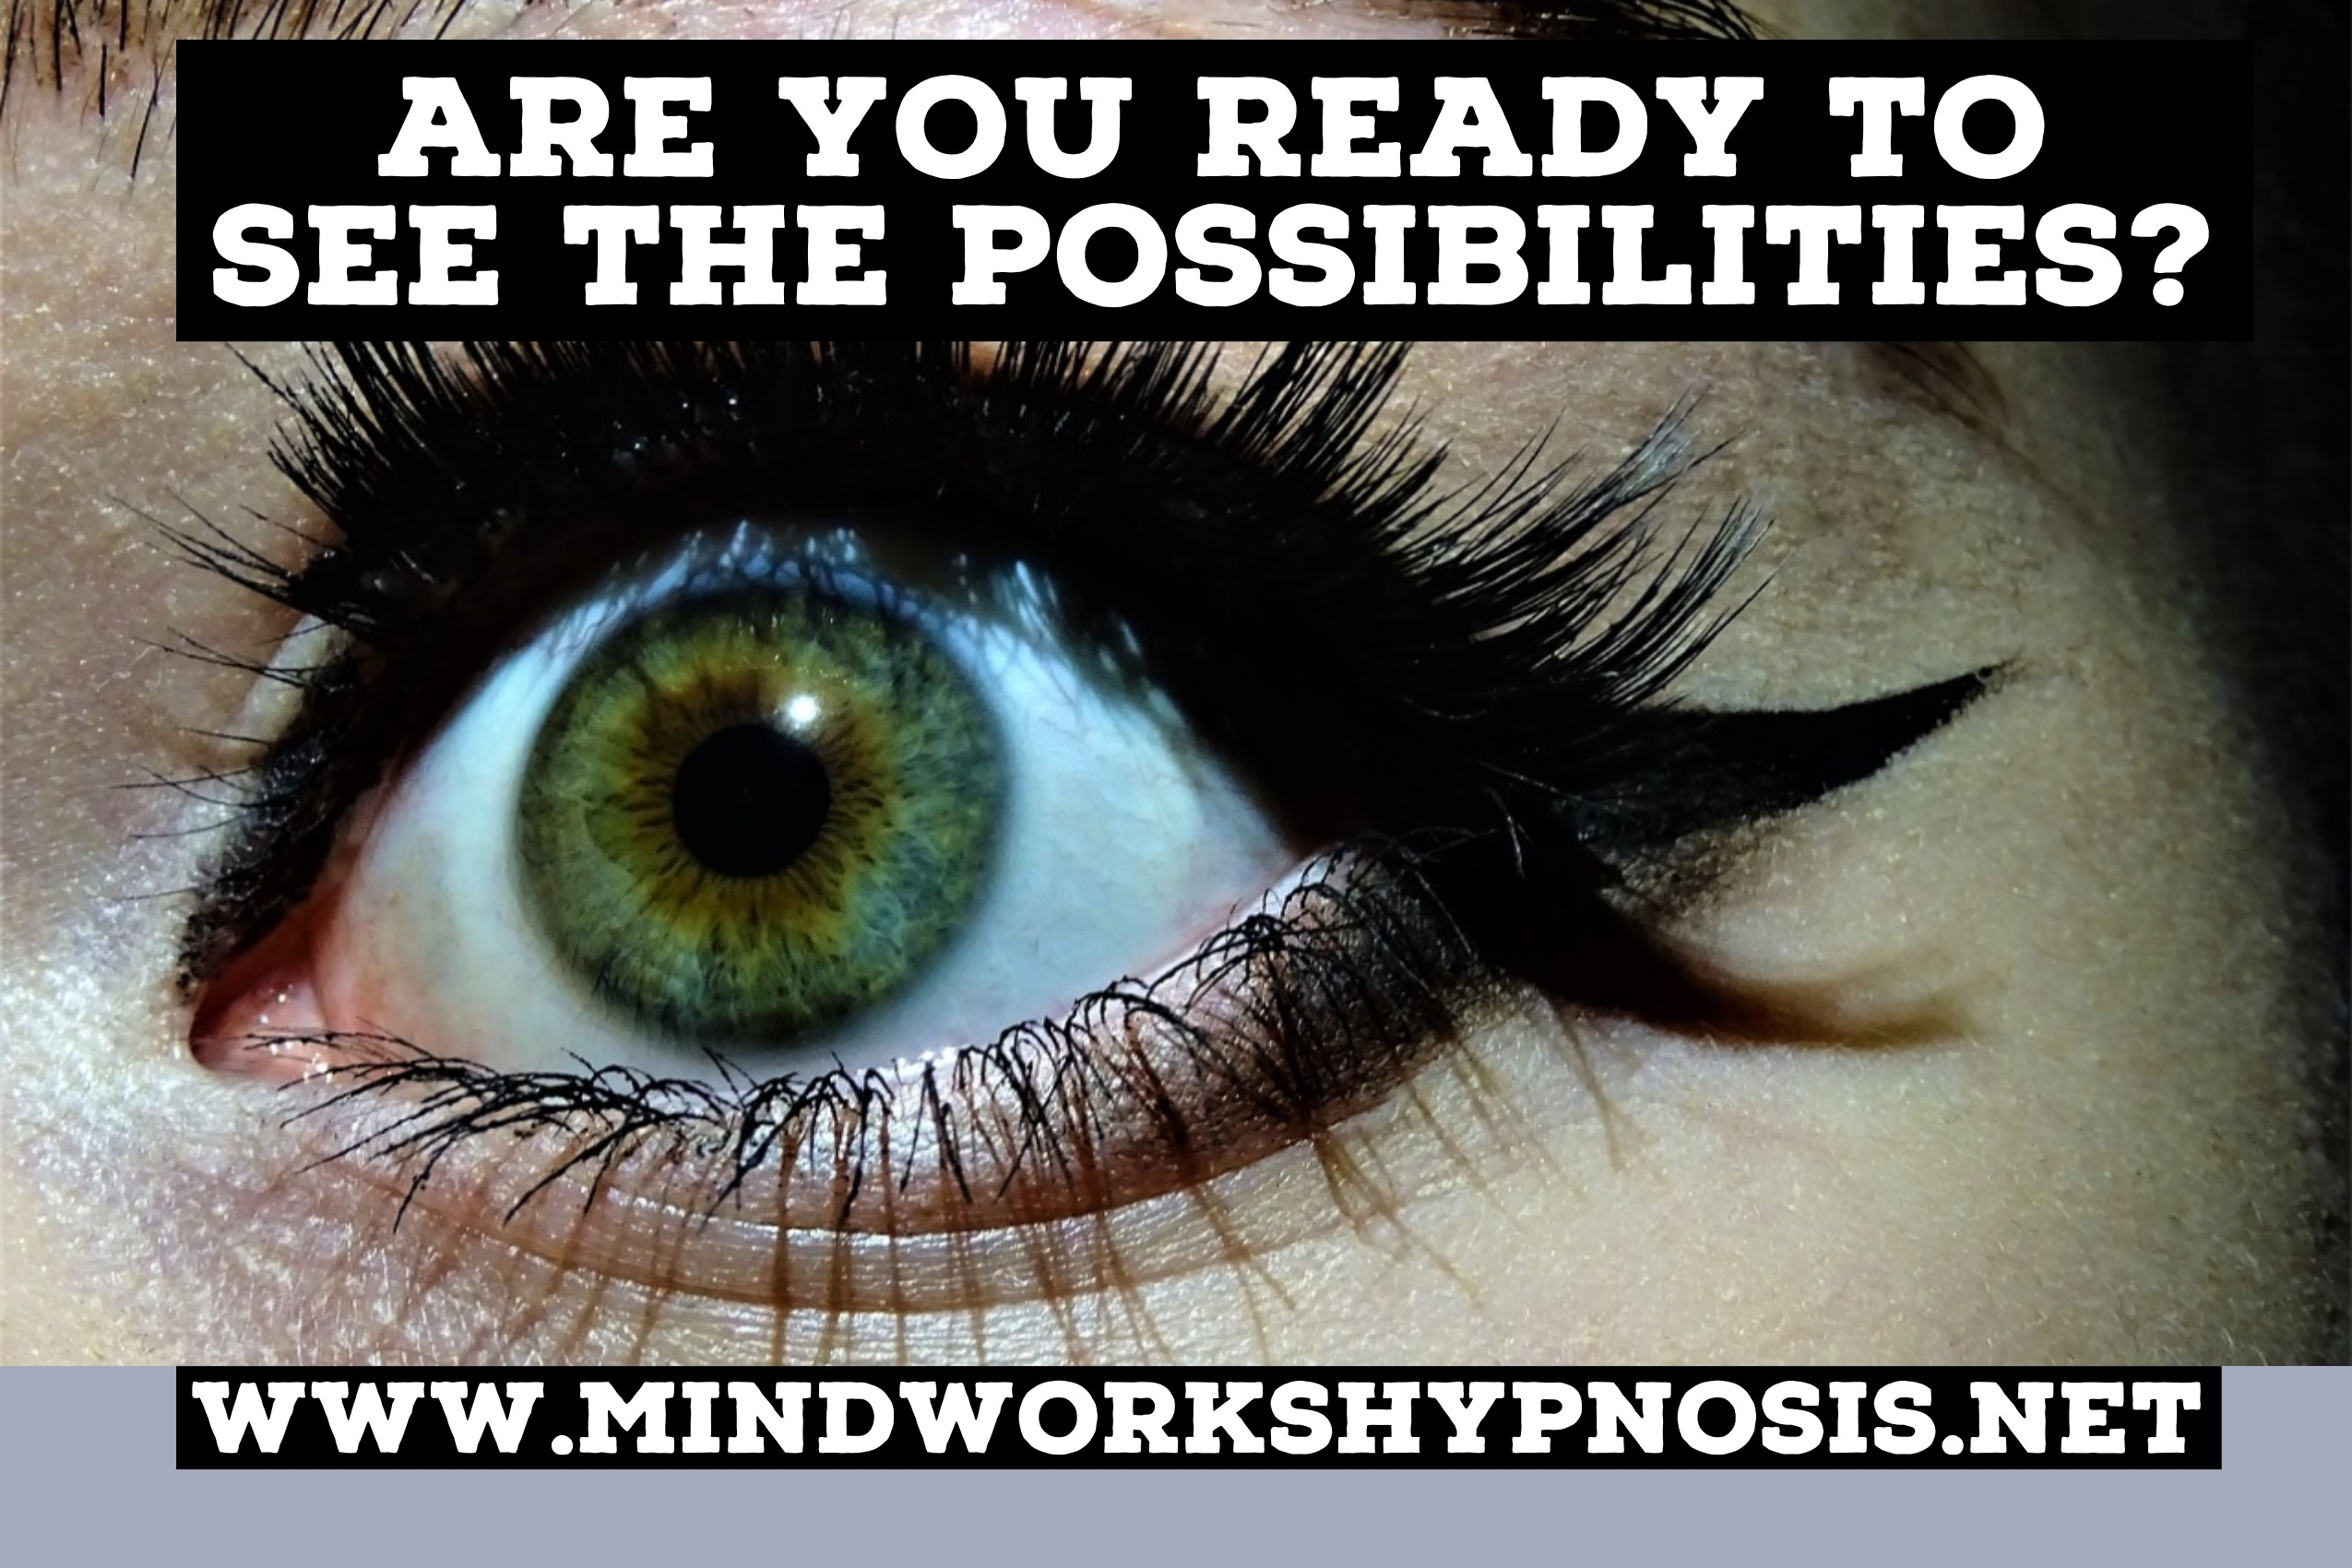 Clear inspired thinking with Mindworks Hypnosis & NLP. There are always choices.